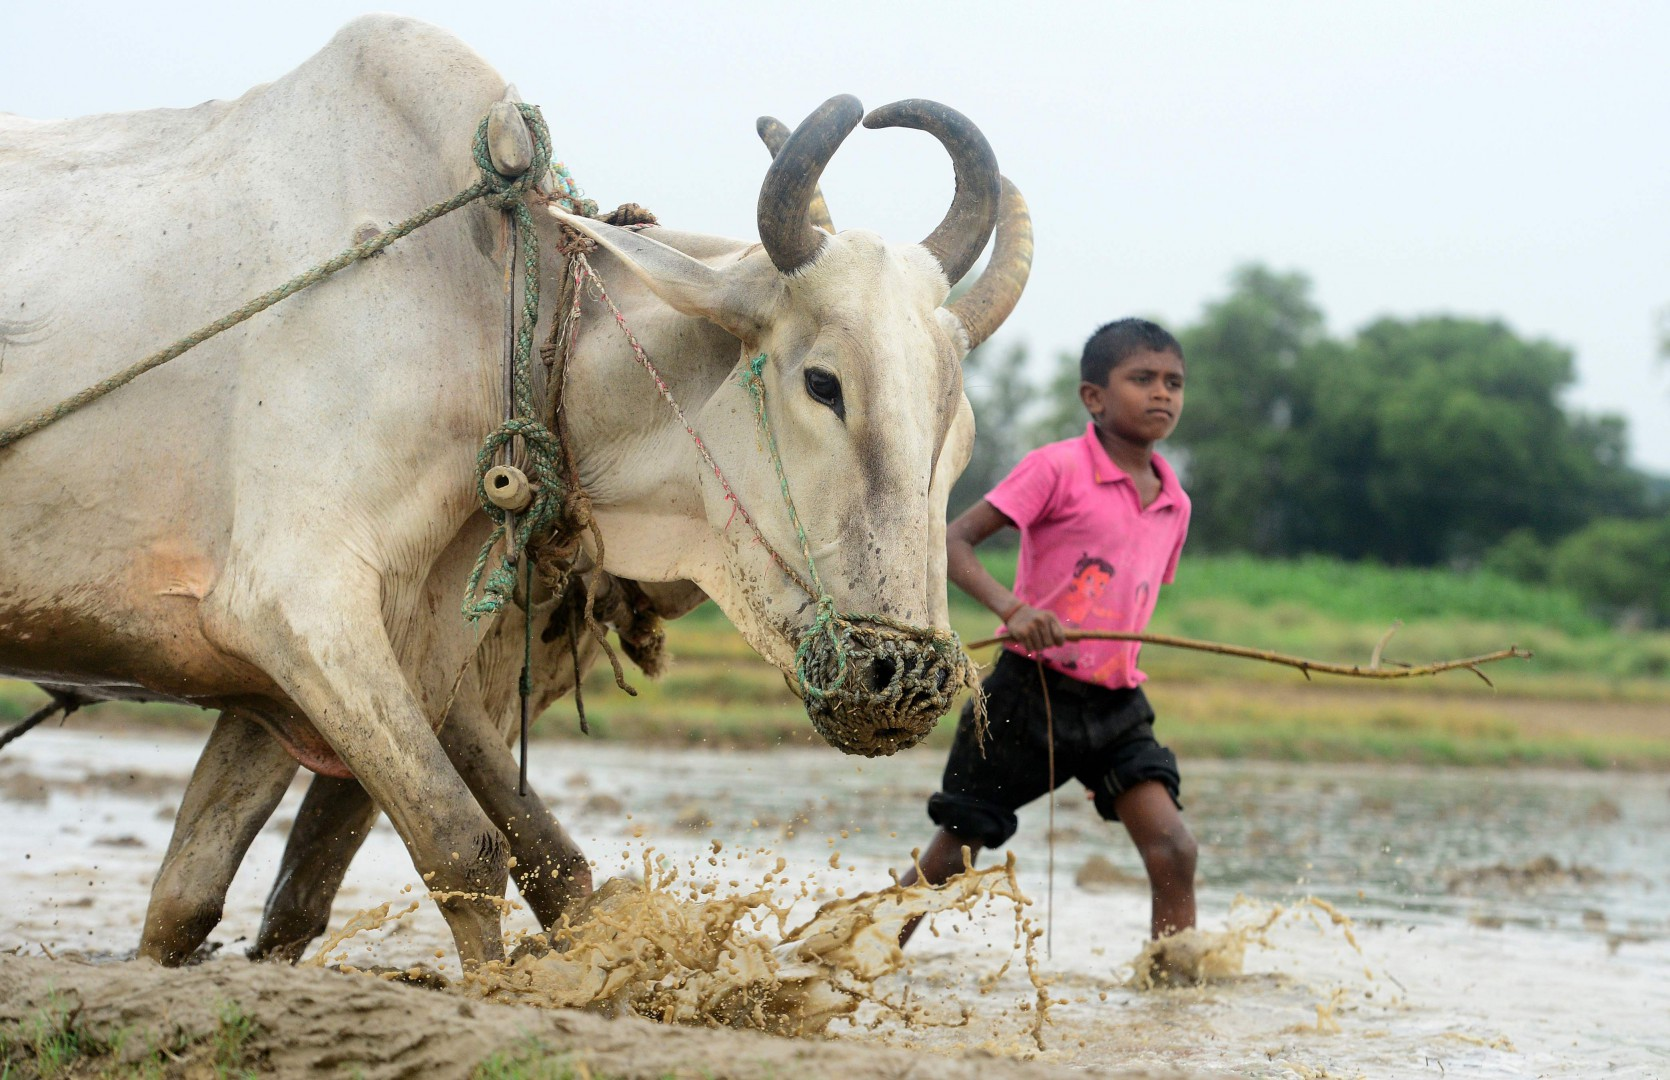 An Indian boy with a cow ploughs a paddy field following monsoon rains in Phafamau village near Allahabad on July 12, 2018. / AFP PHOTO / SANJAY KANOJIA